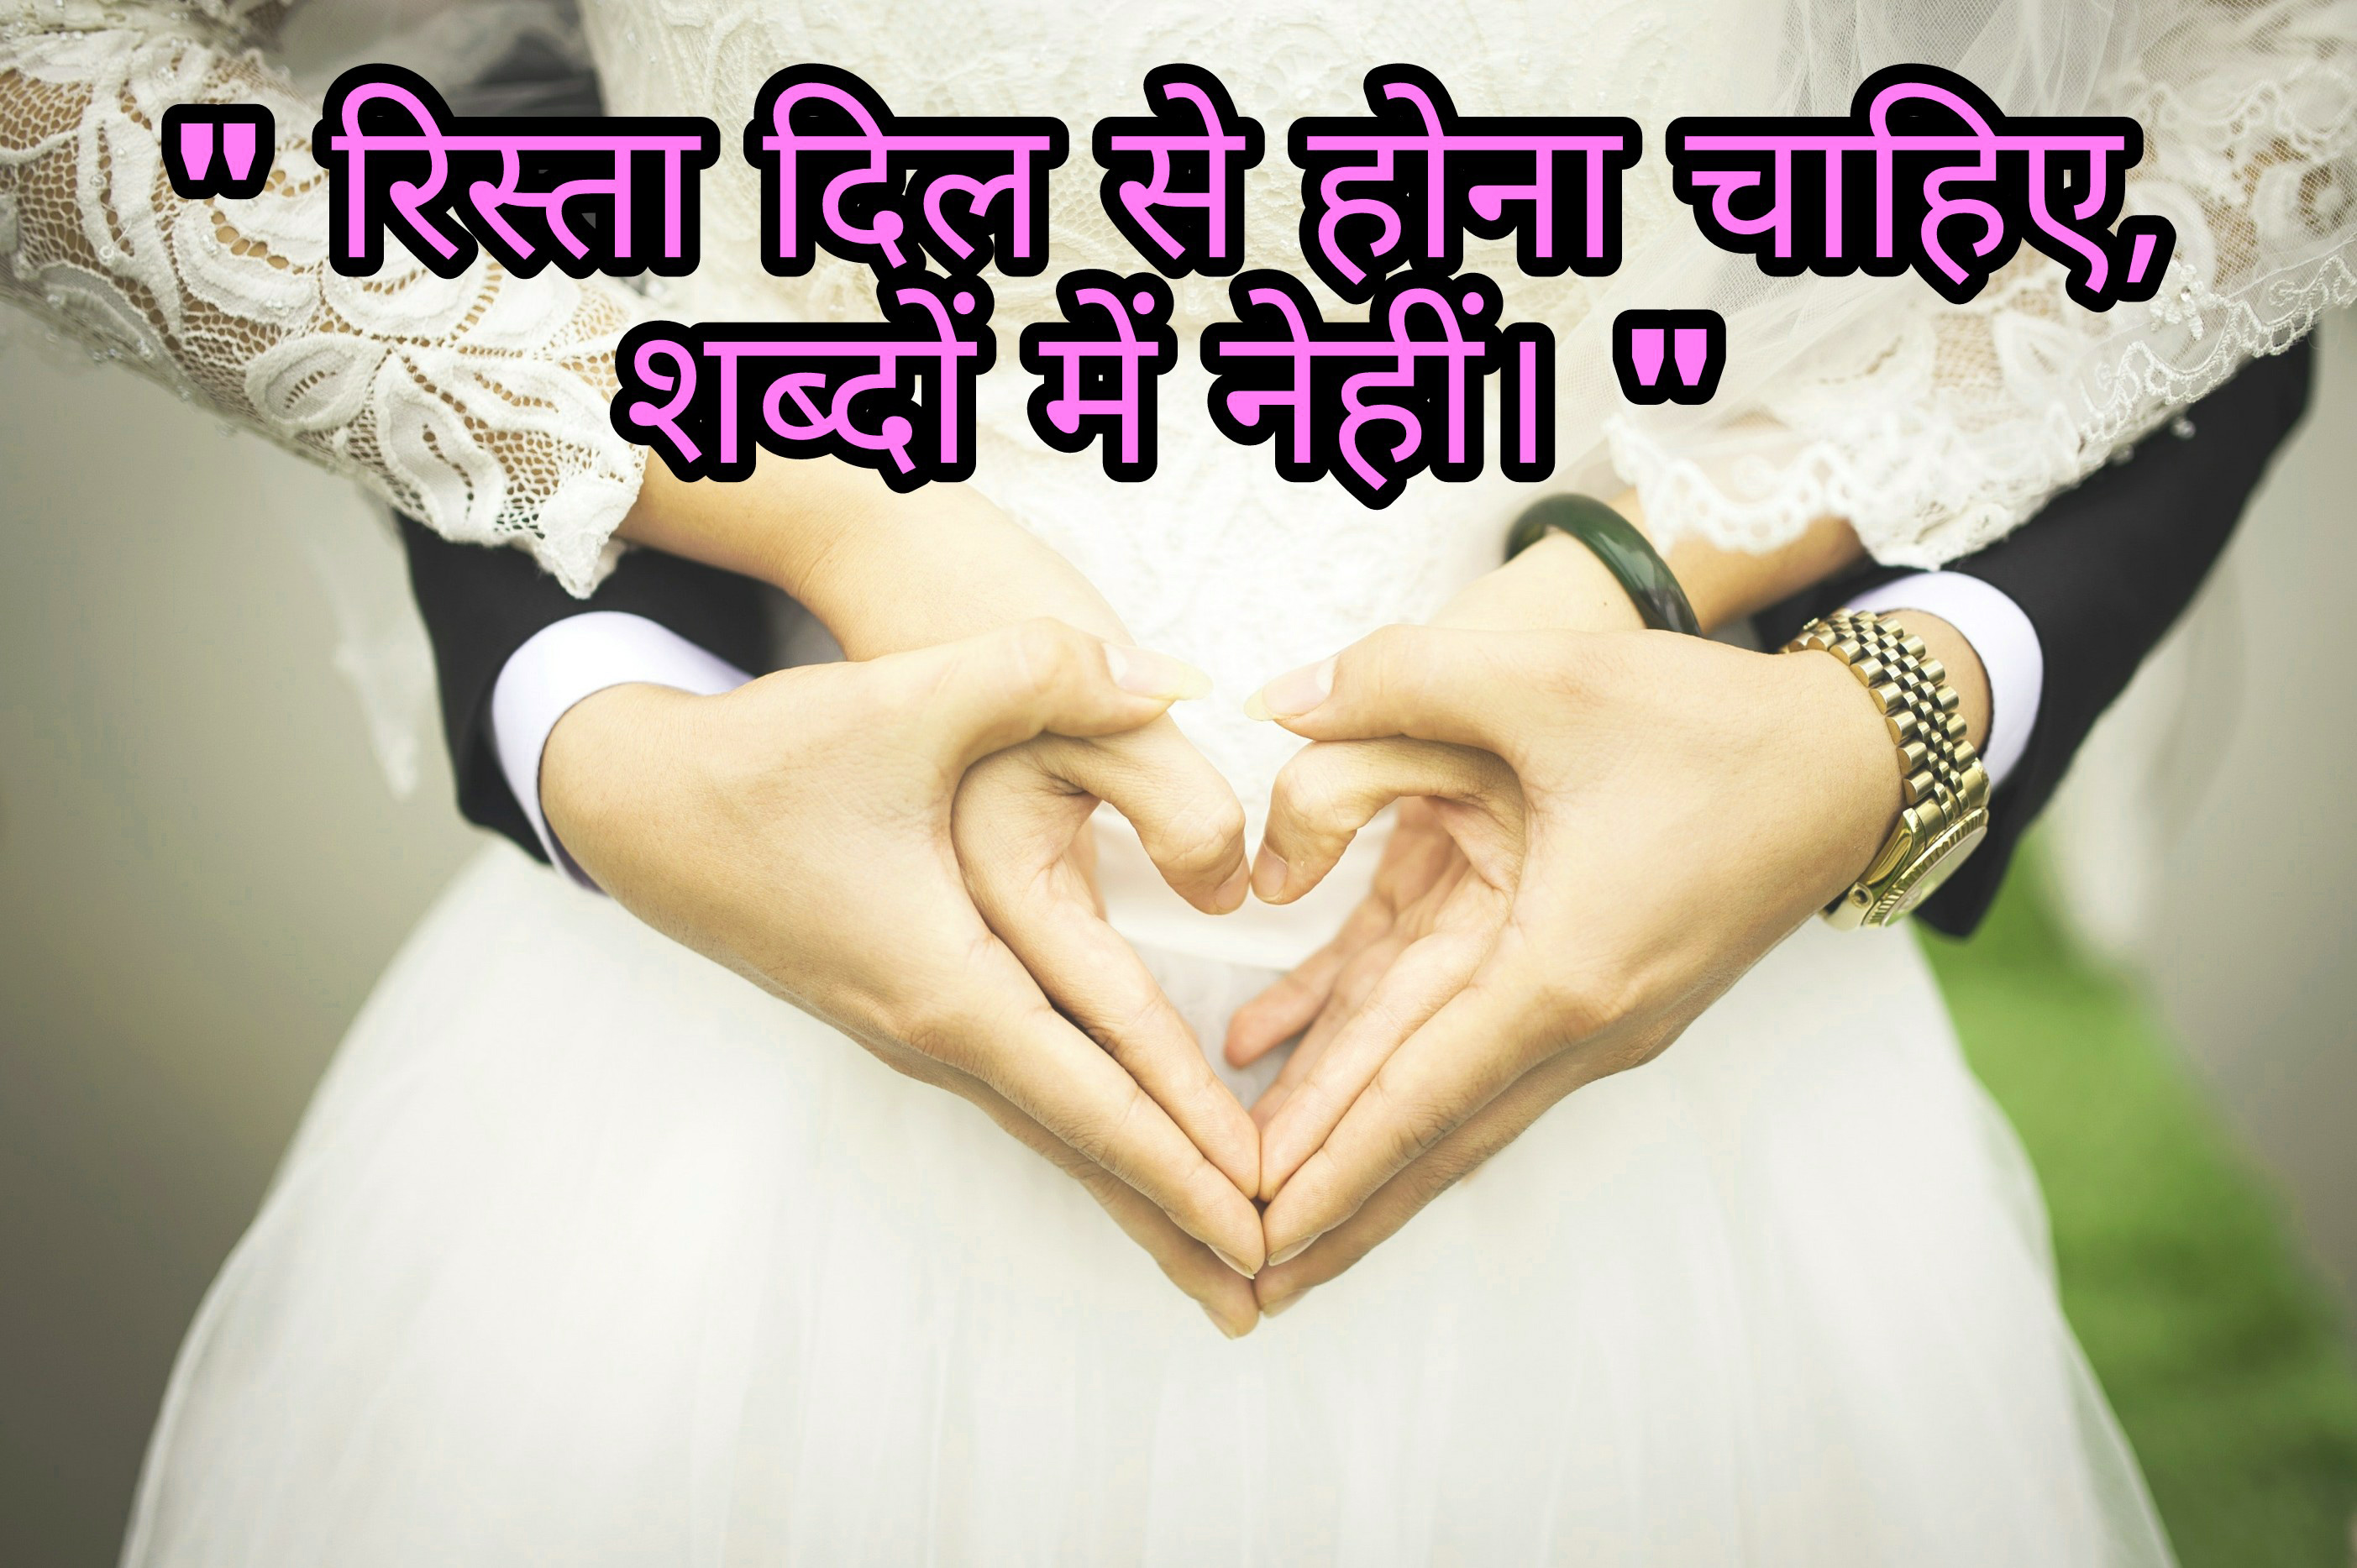 Happy Life Whatsapp Status In Hindi Images Wallpaper Pics HD Free Download Happy Life Status In Hindi Images (85)